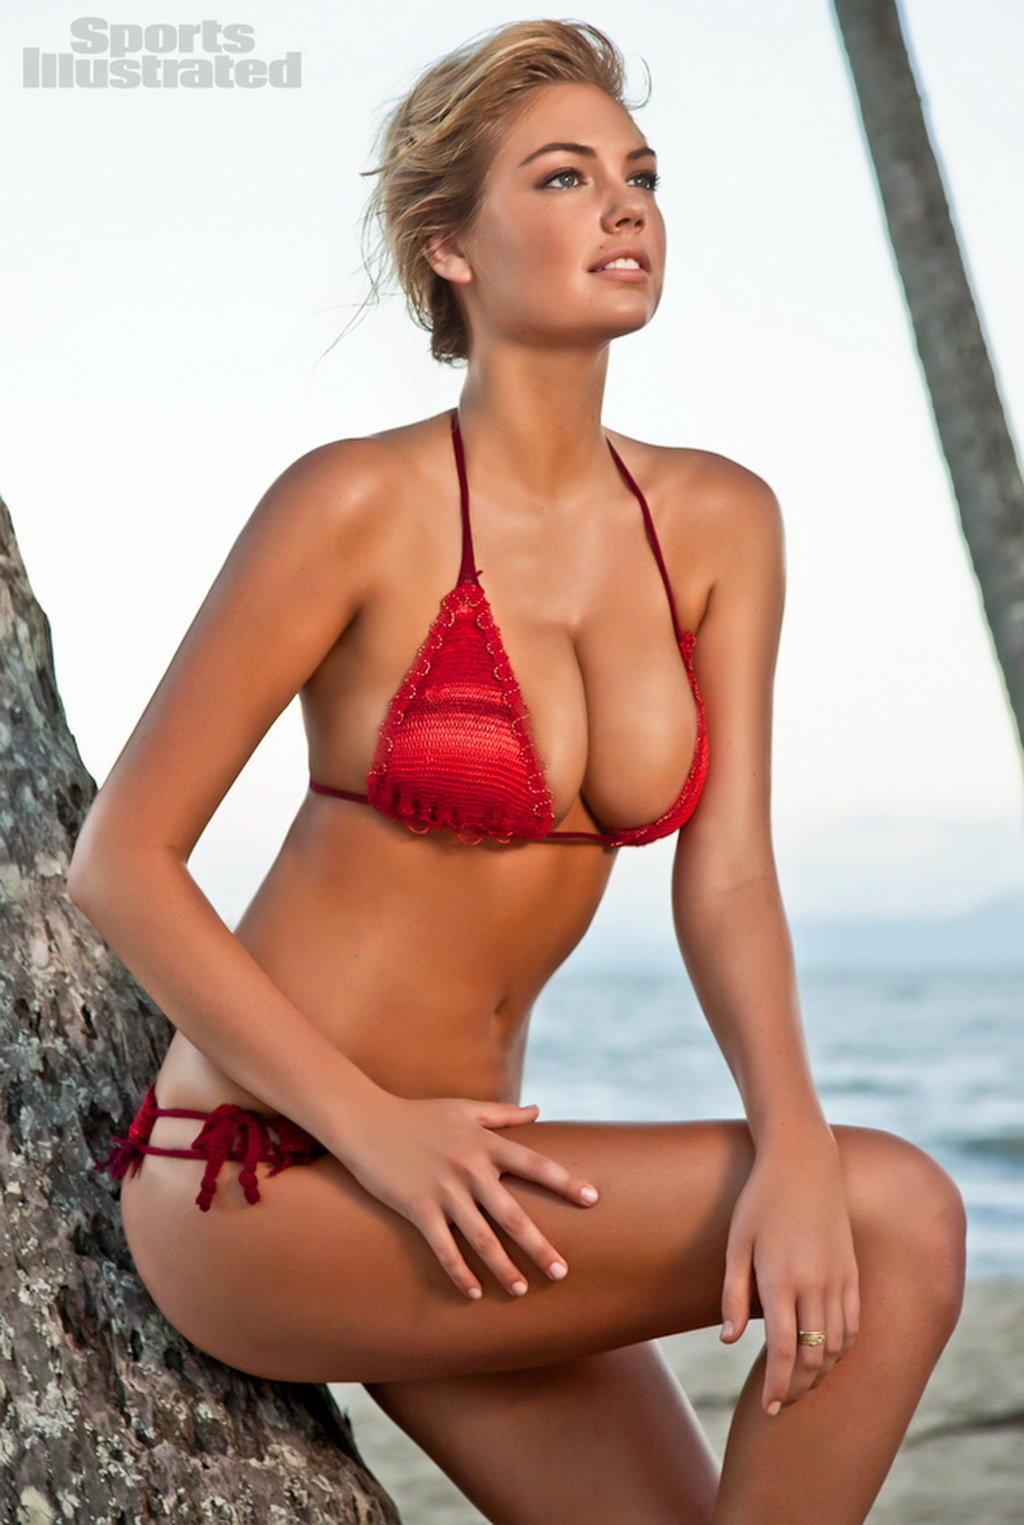 Sexy photos of kate upton